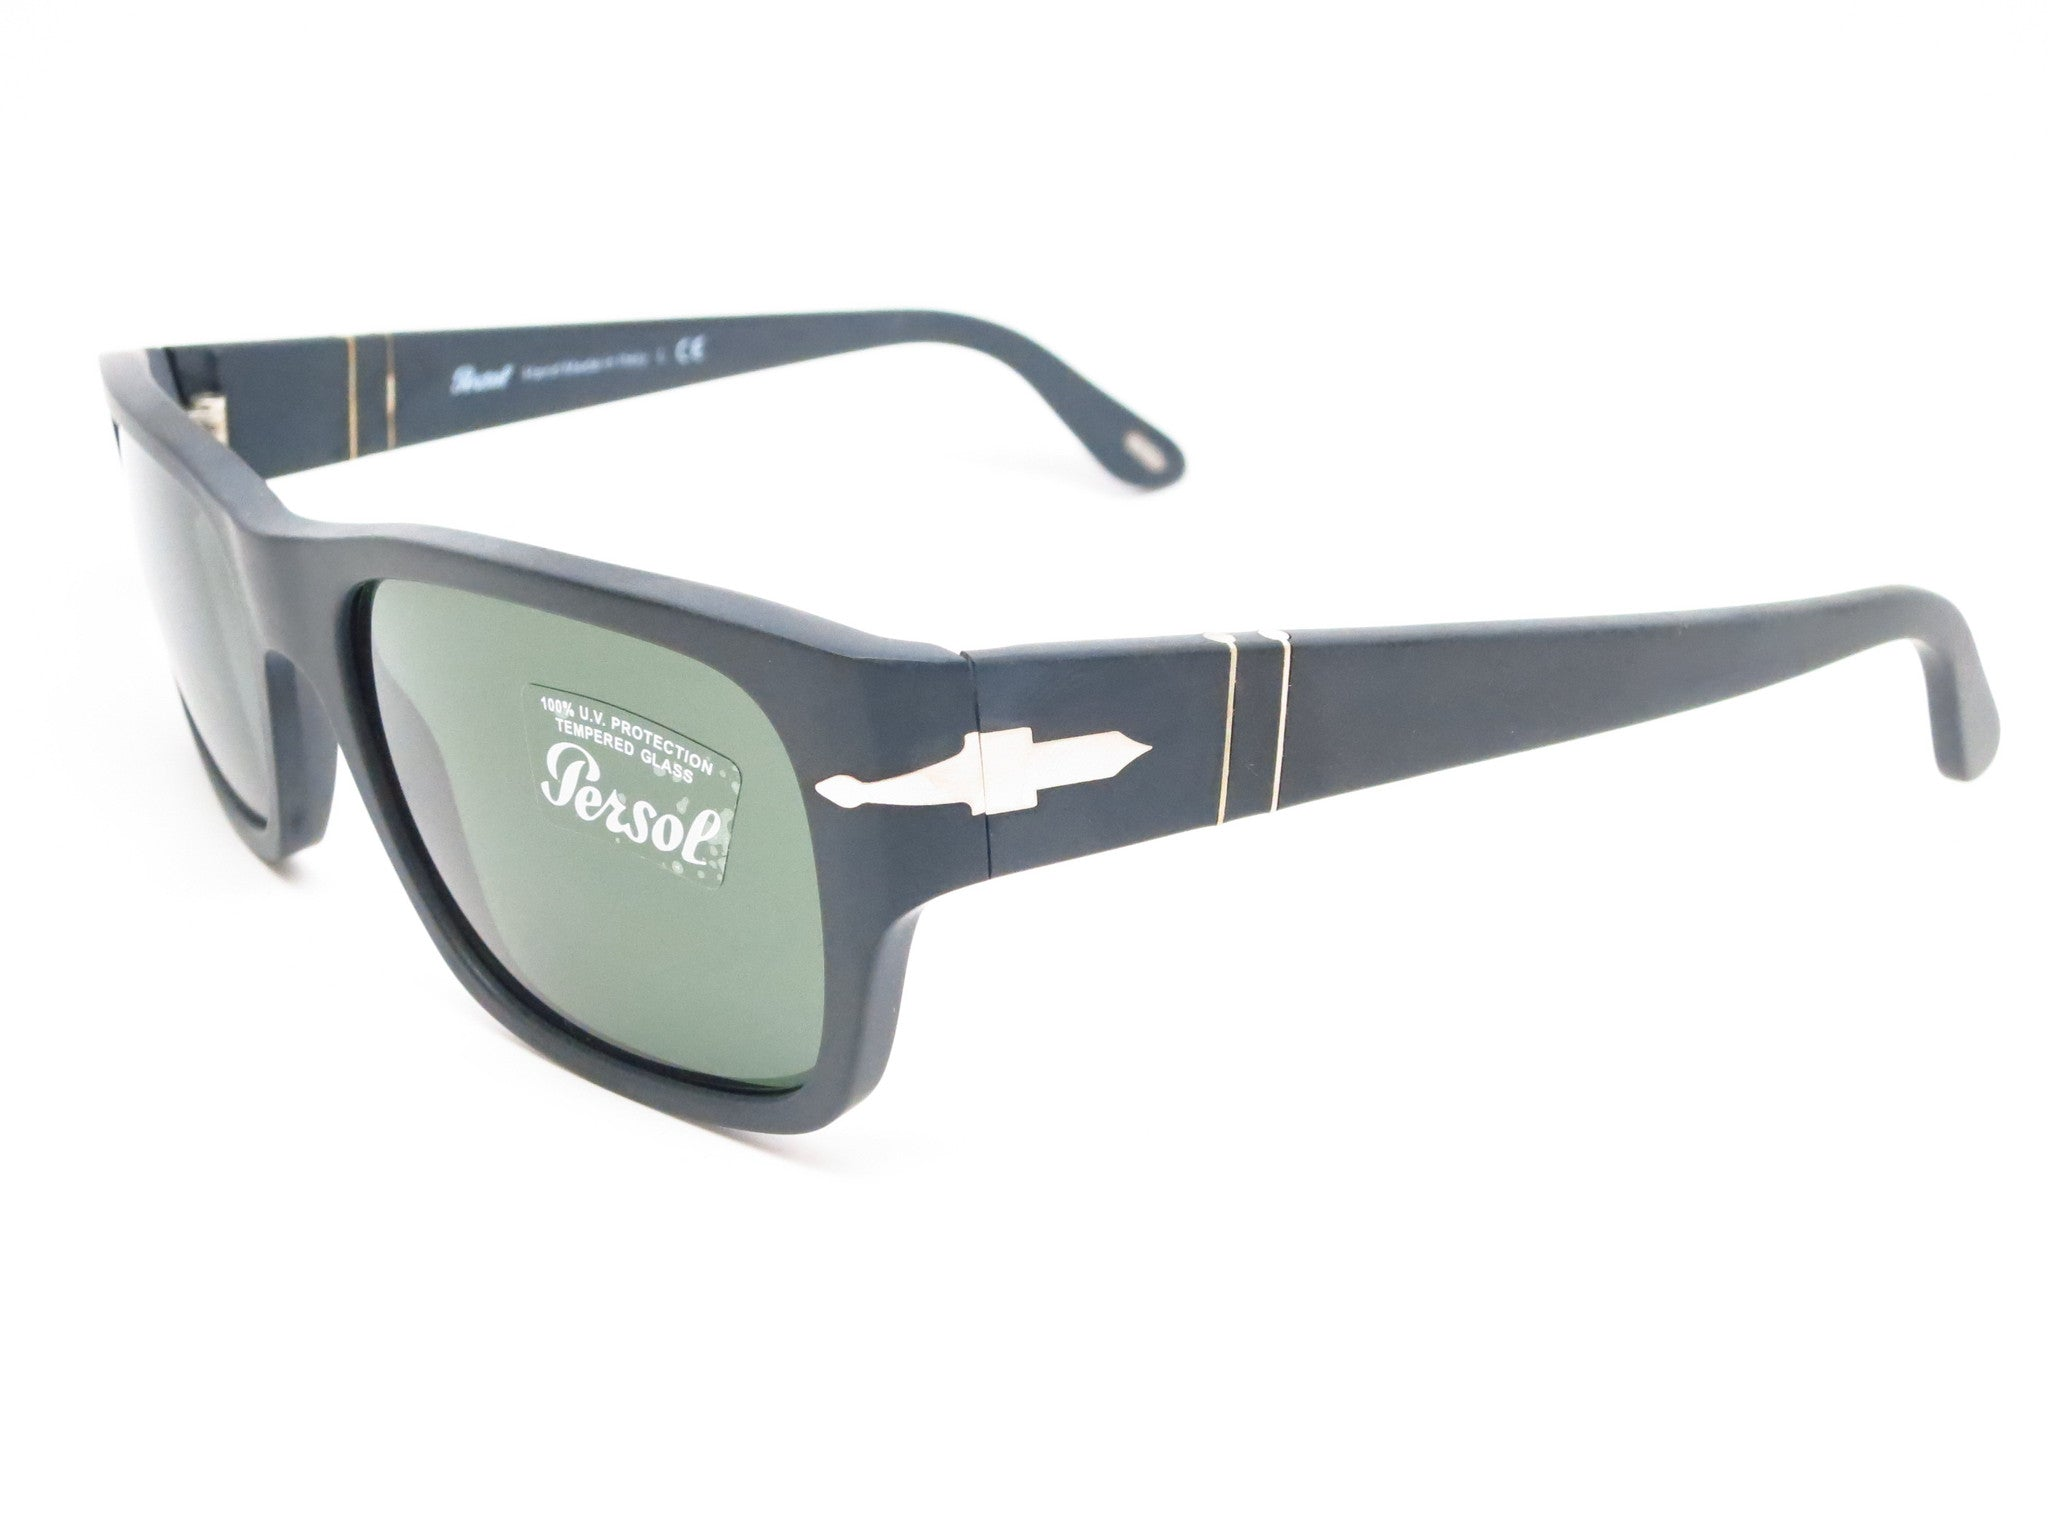 59908ba4c3ee Persol PO 3021-S 900/31 Matte Black Sunglasses - Eye Heart Shades -